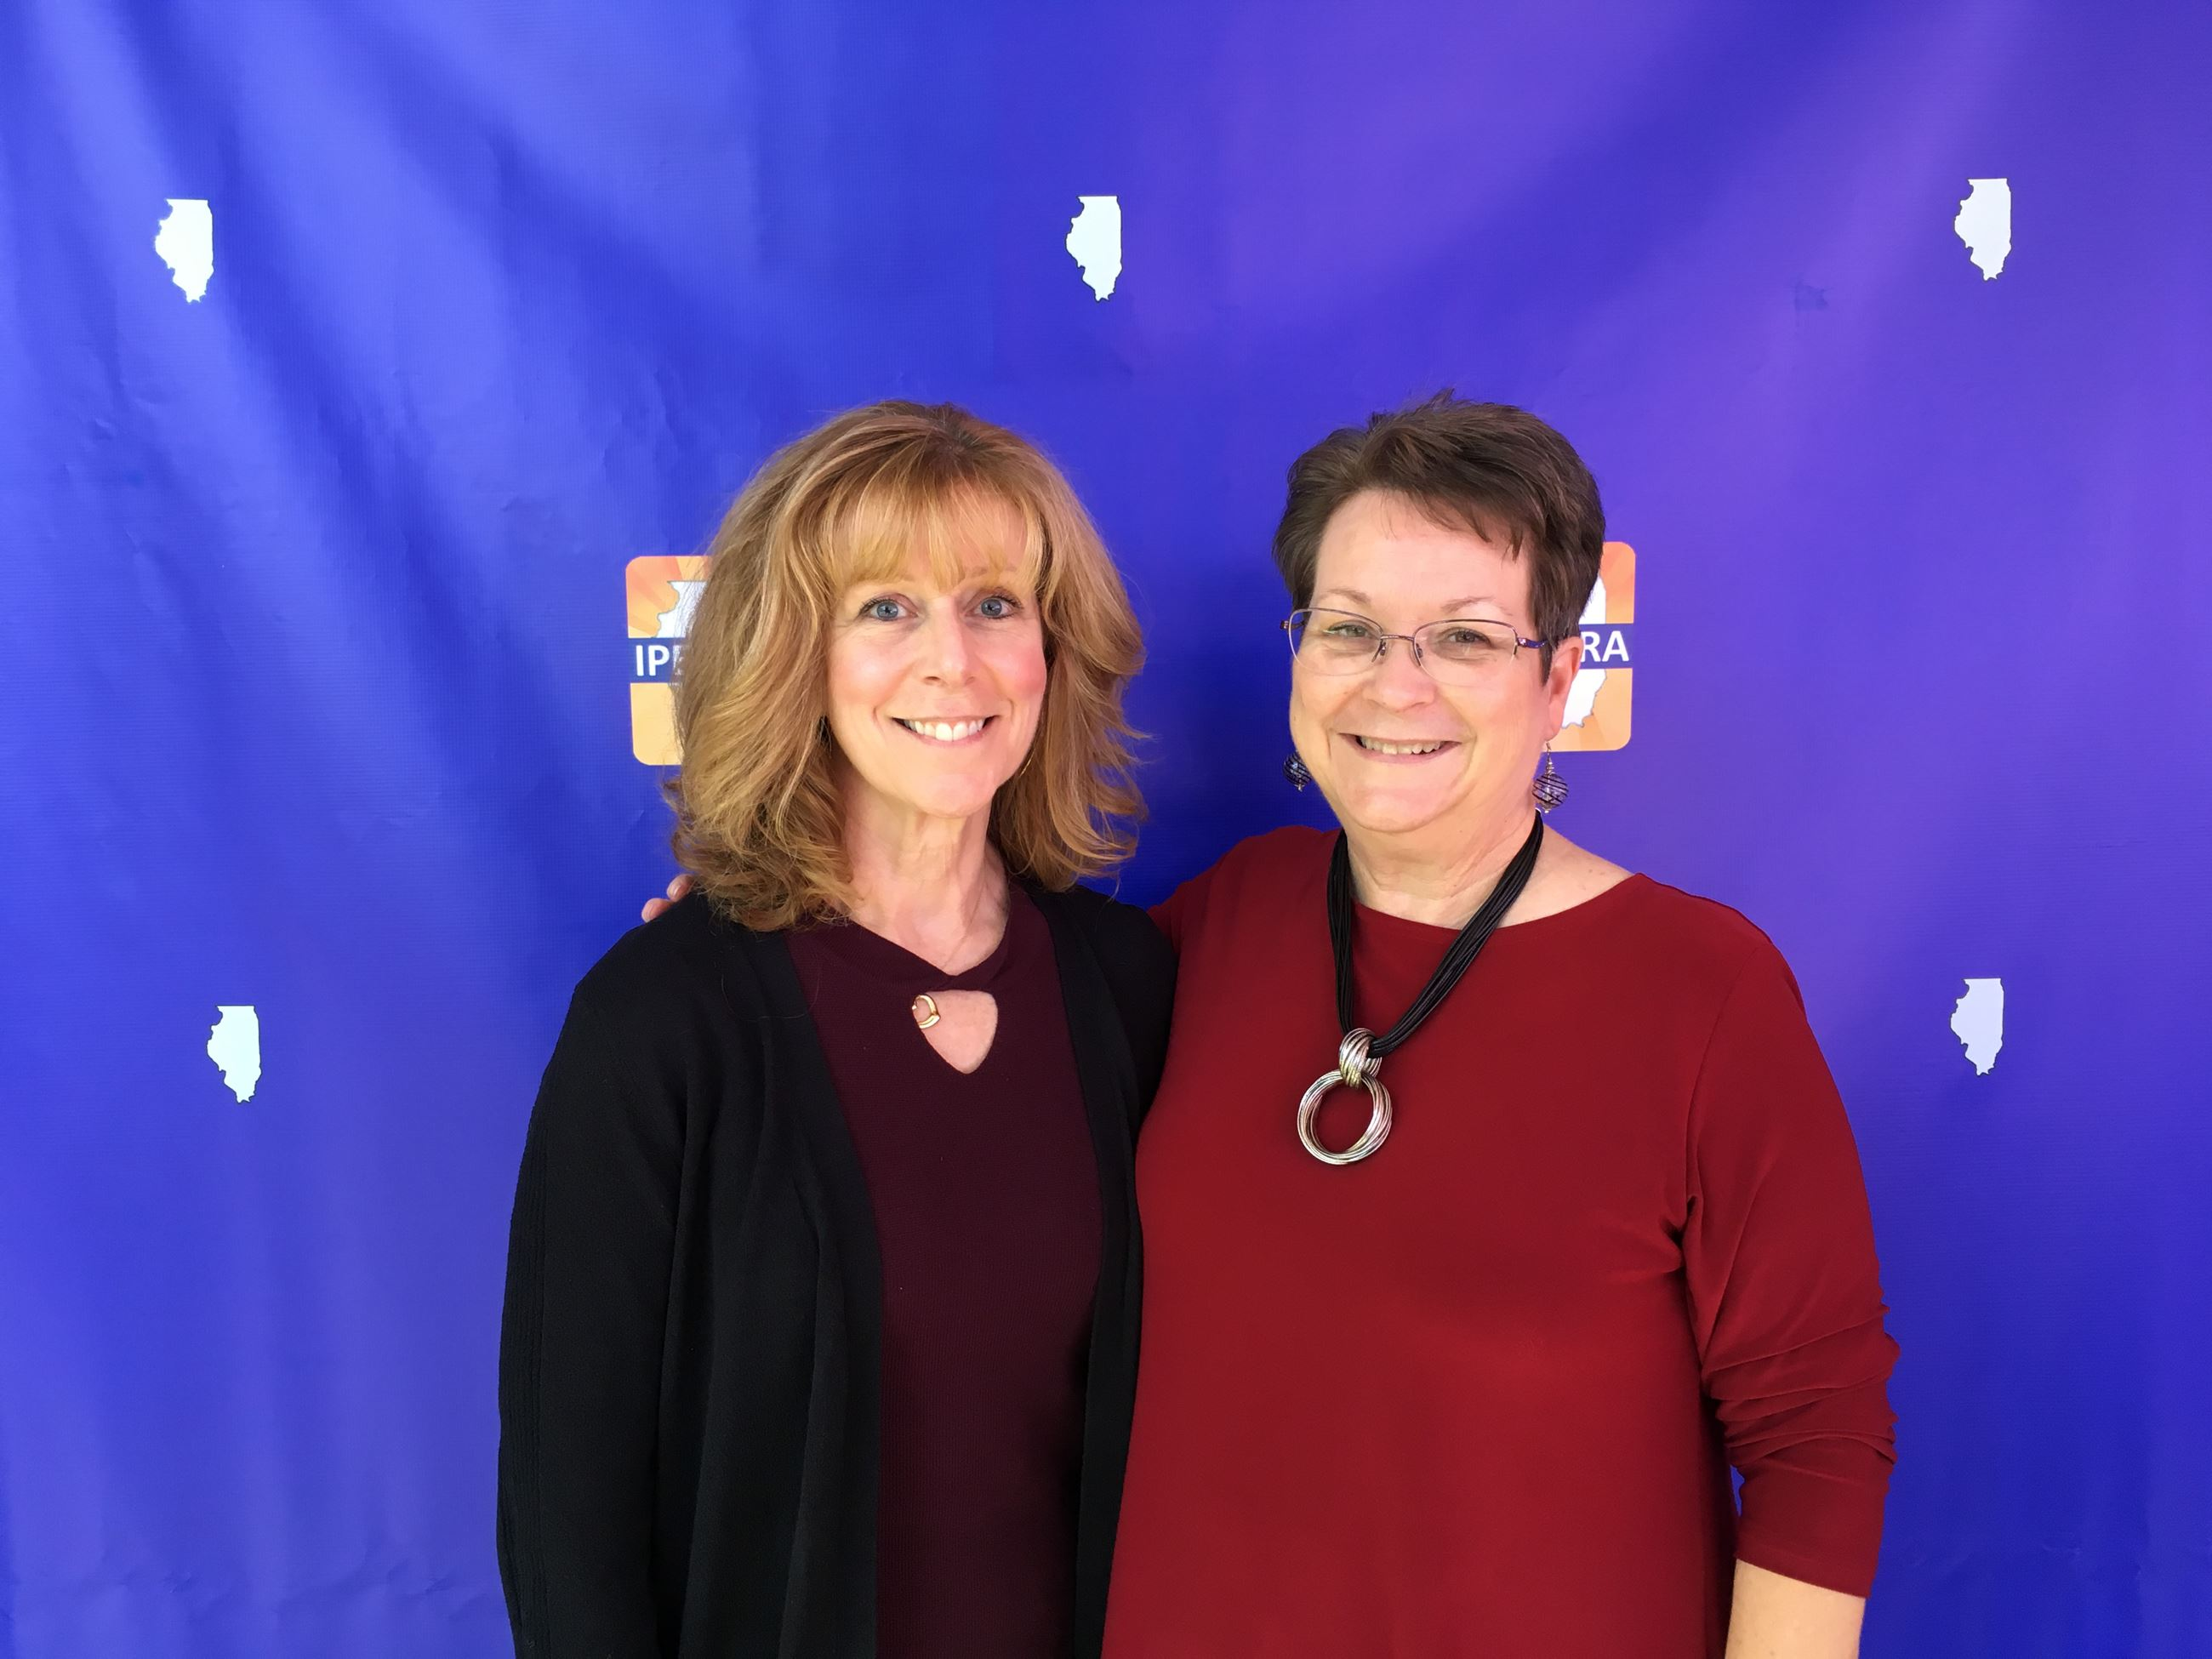 2 women standing next to each other in front of a blue background with IPELRA logos